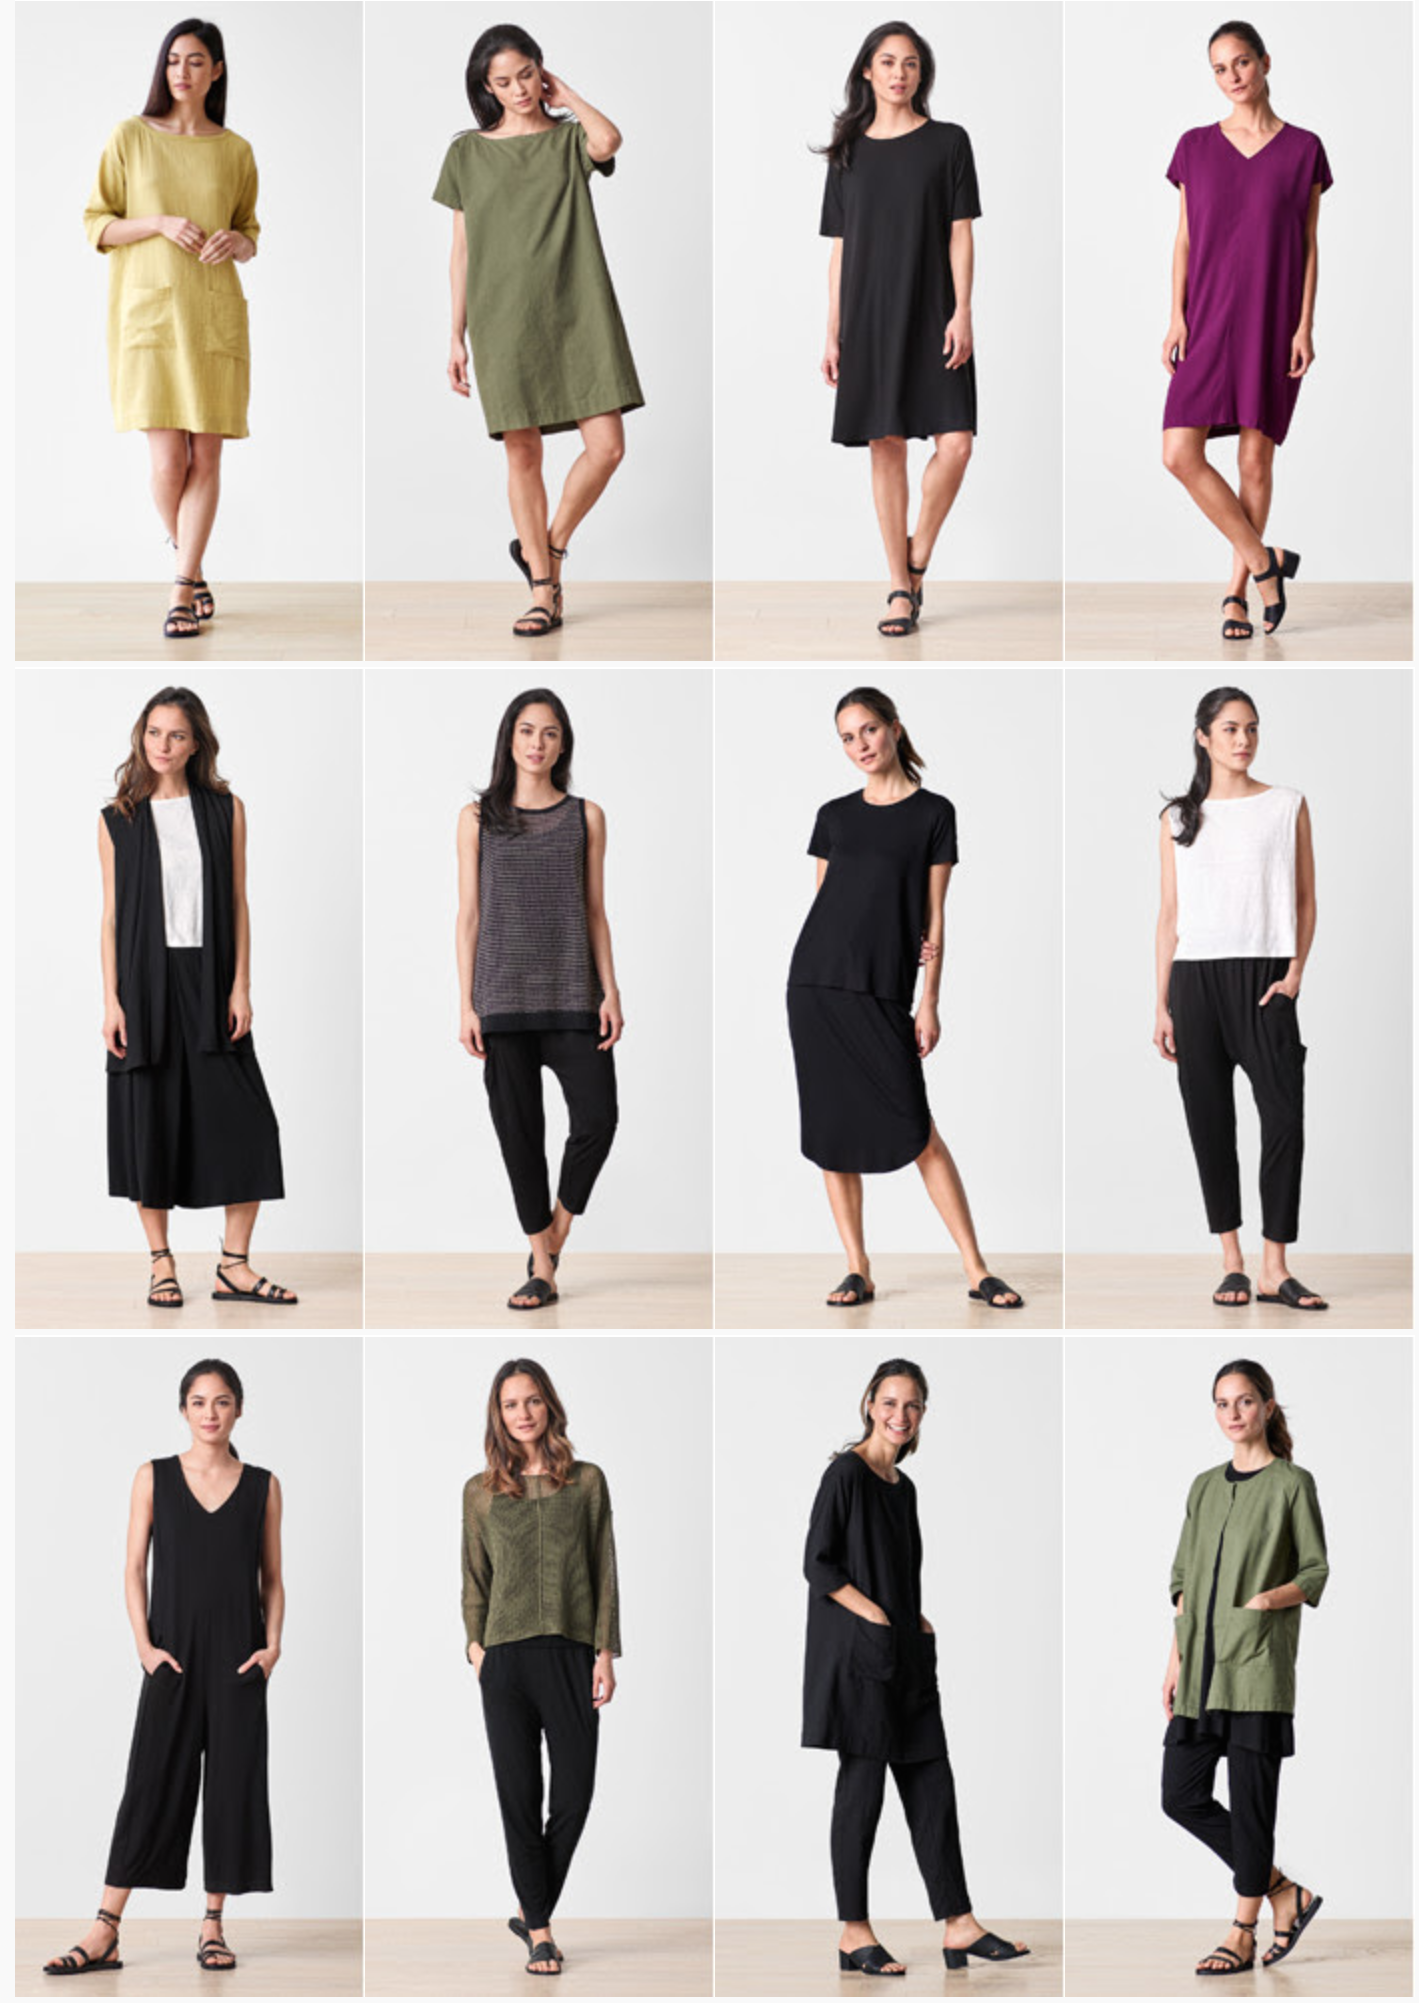 eileen-fisher-june-17-look-book.png